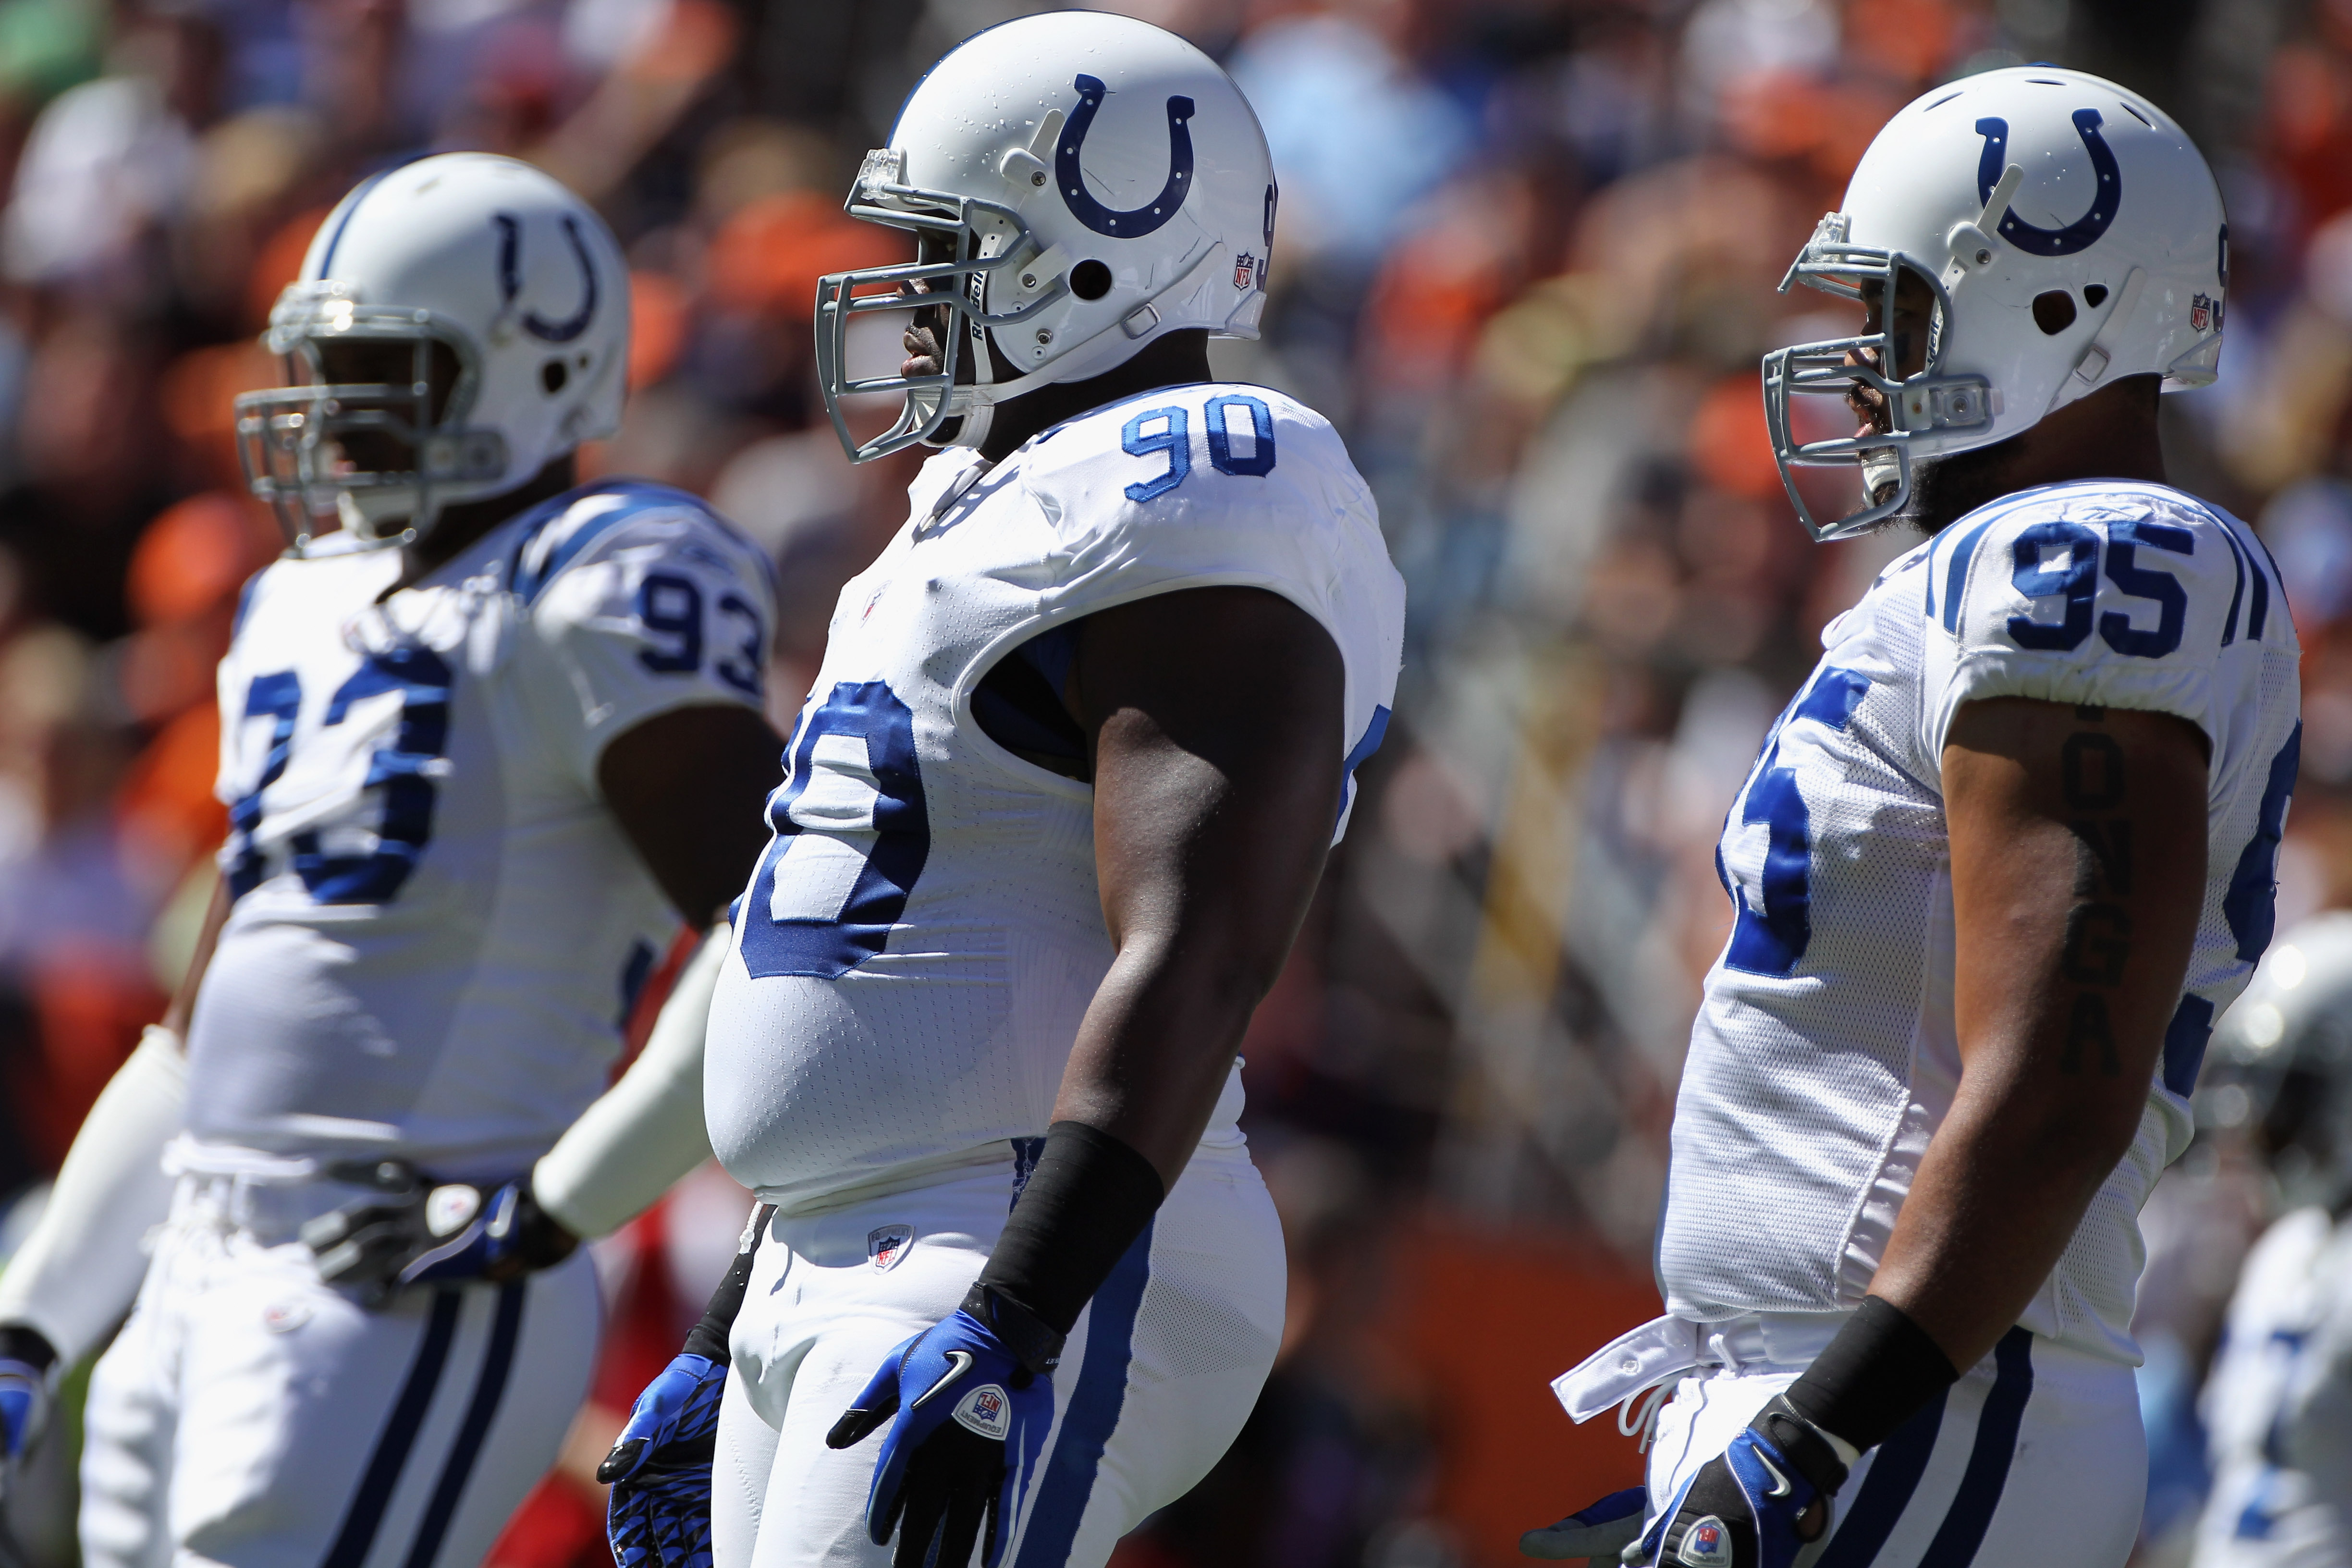 DENVER - SEPTEMBER 26:  Defensive linemen Dwight Freeney #93, Dan Muir #90 and Fili Moala #95 of the Indianapolis Colts prepare to play defense against the Denver Broncos at INVESCO Field at Mile High on September 26, 2010 in Denver, Colorado. The Colts d